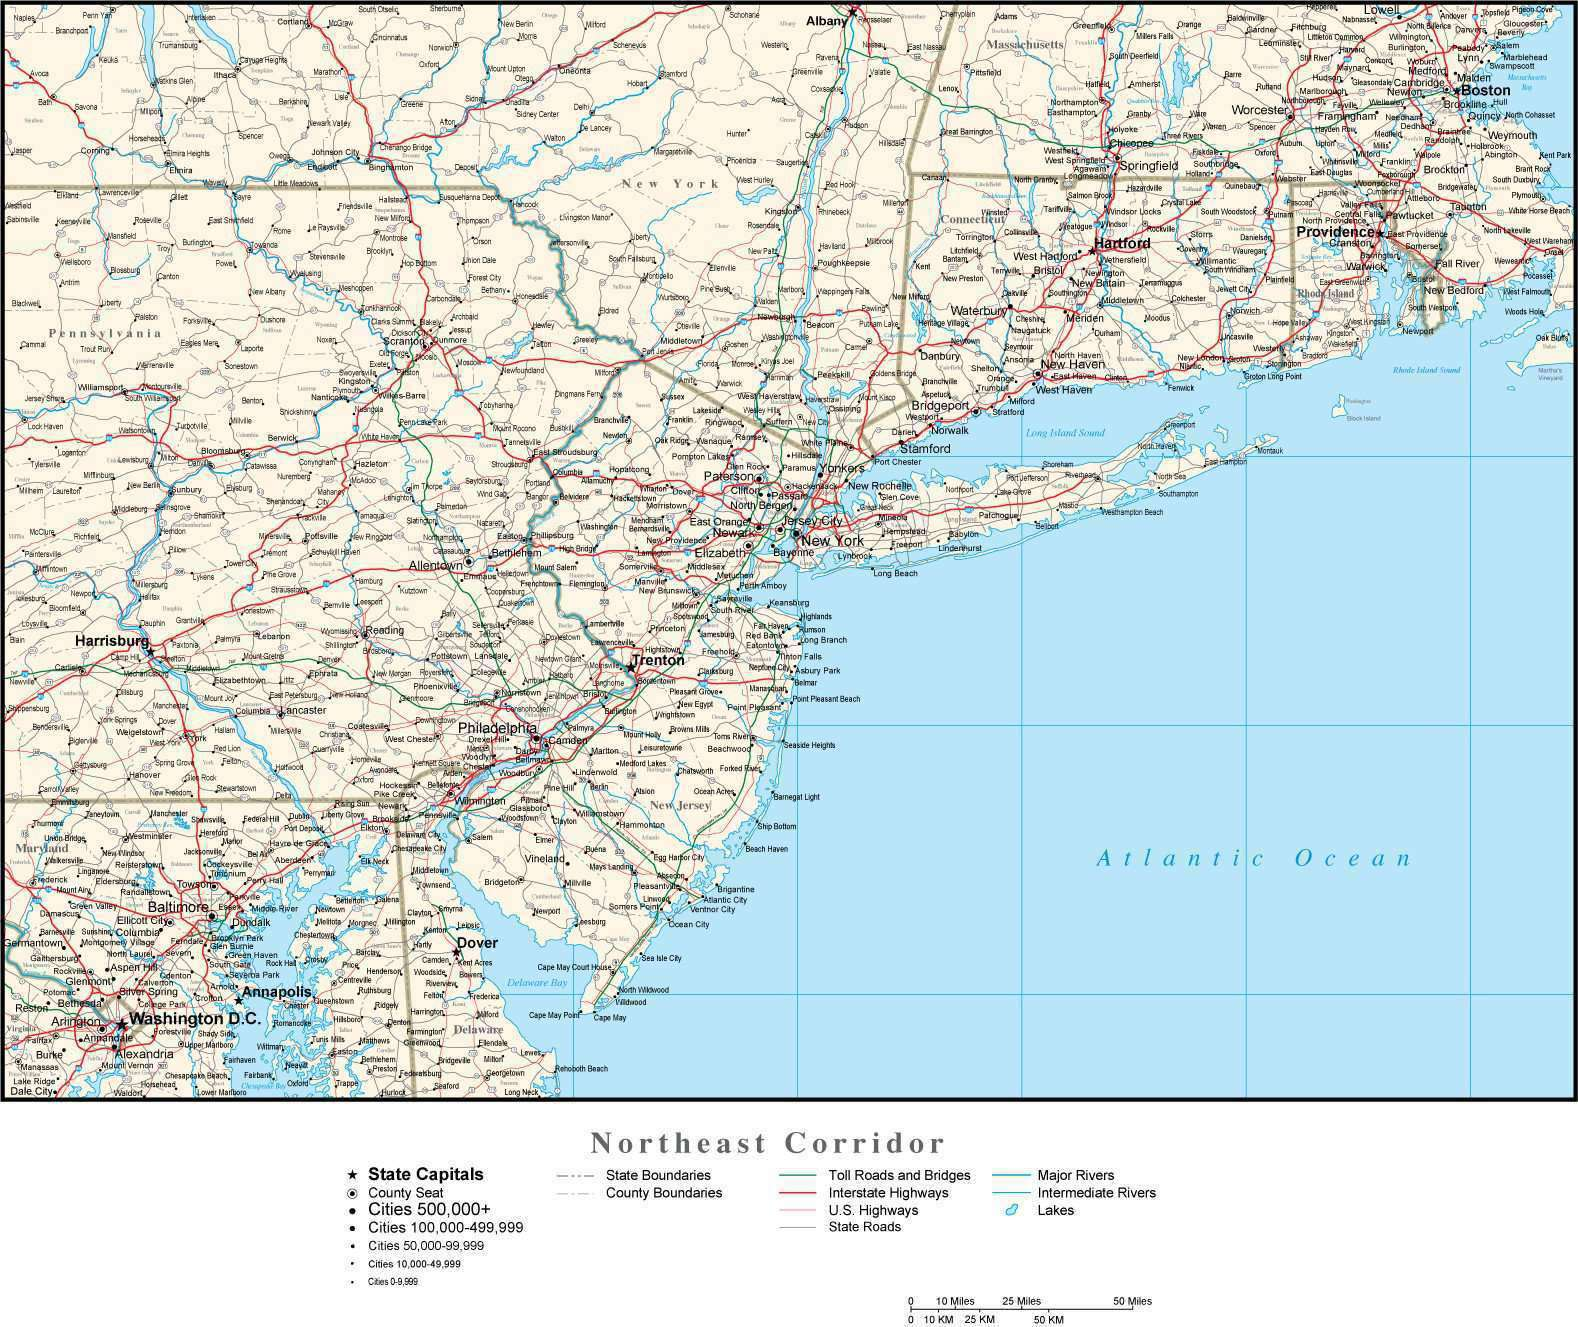 Picture of: Northeast Corridor Map With State Boundaries Cities And Highways